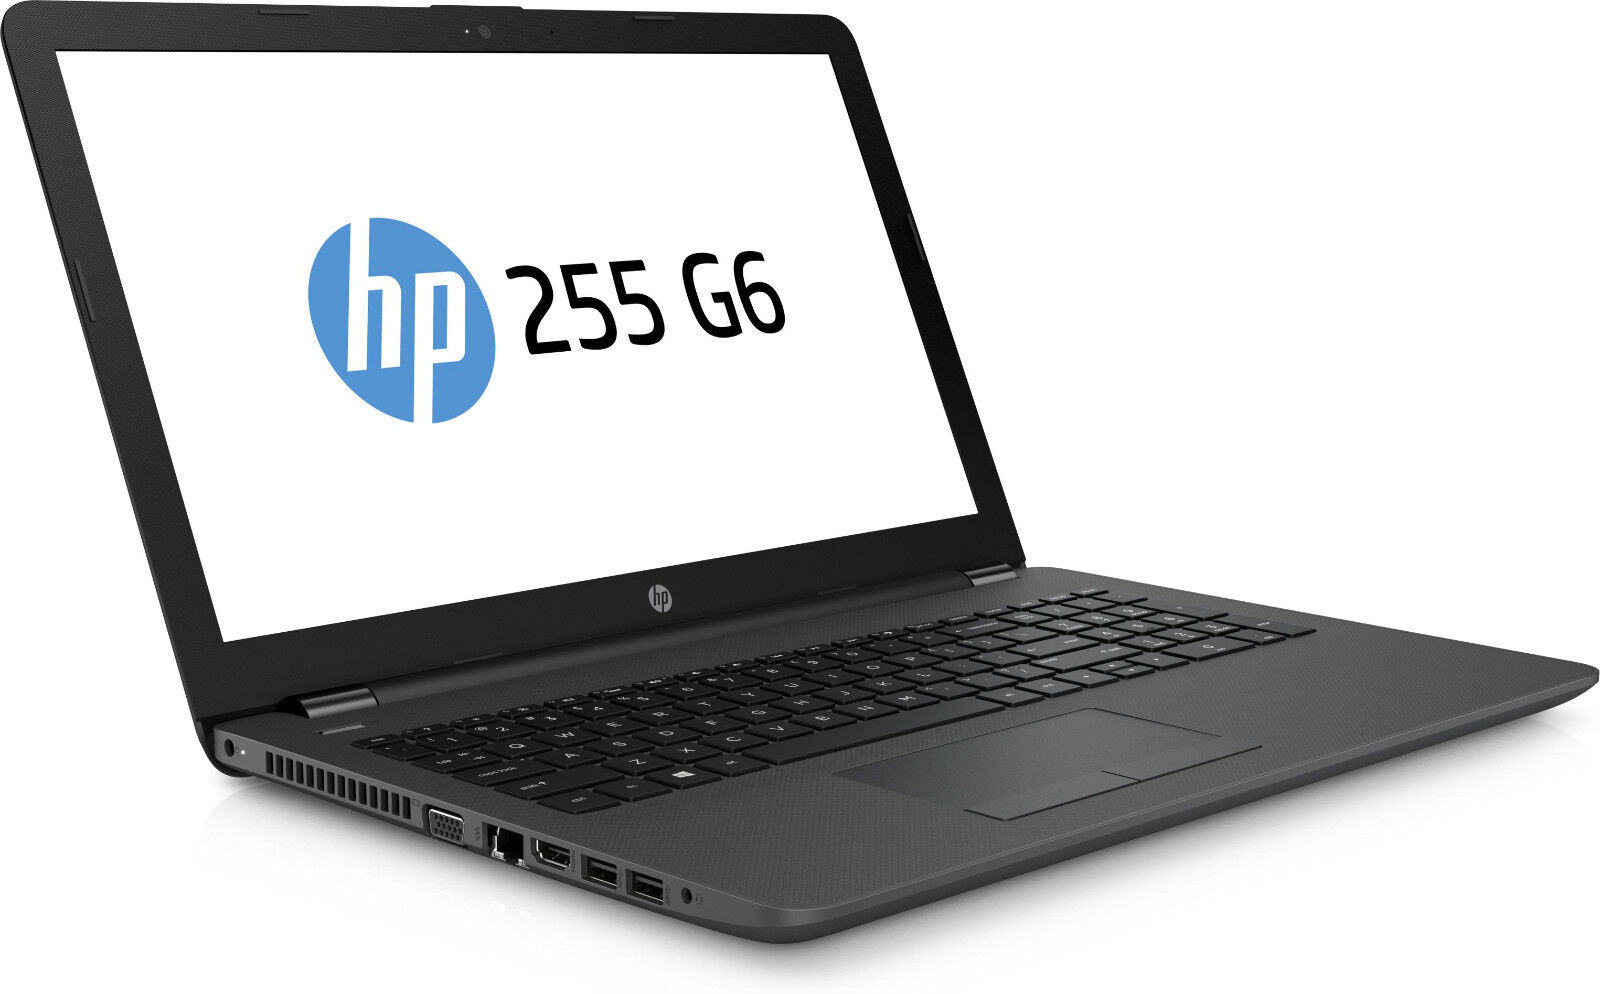 NOTEBOOK HP G6 1WY10EA 15,6